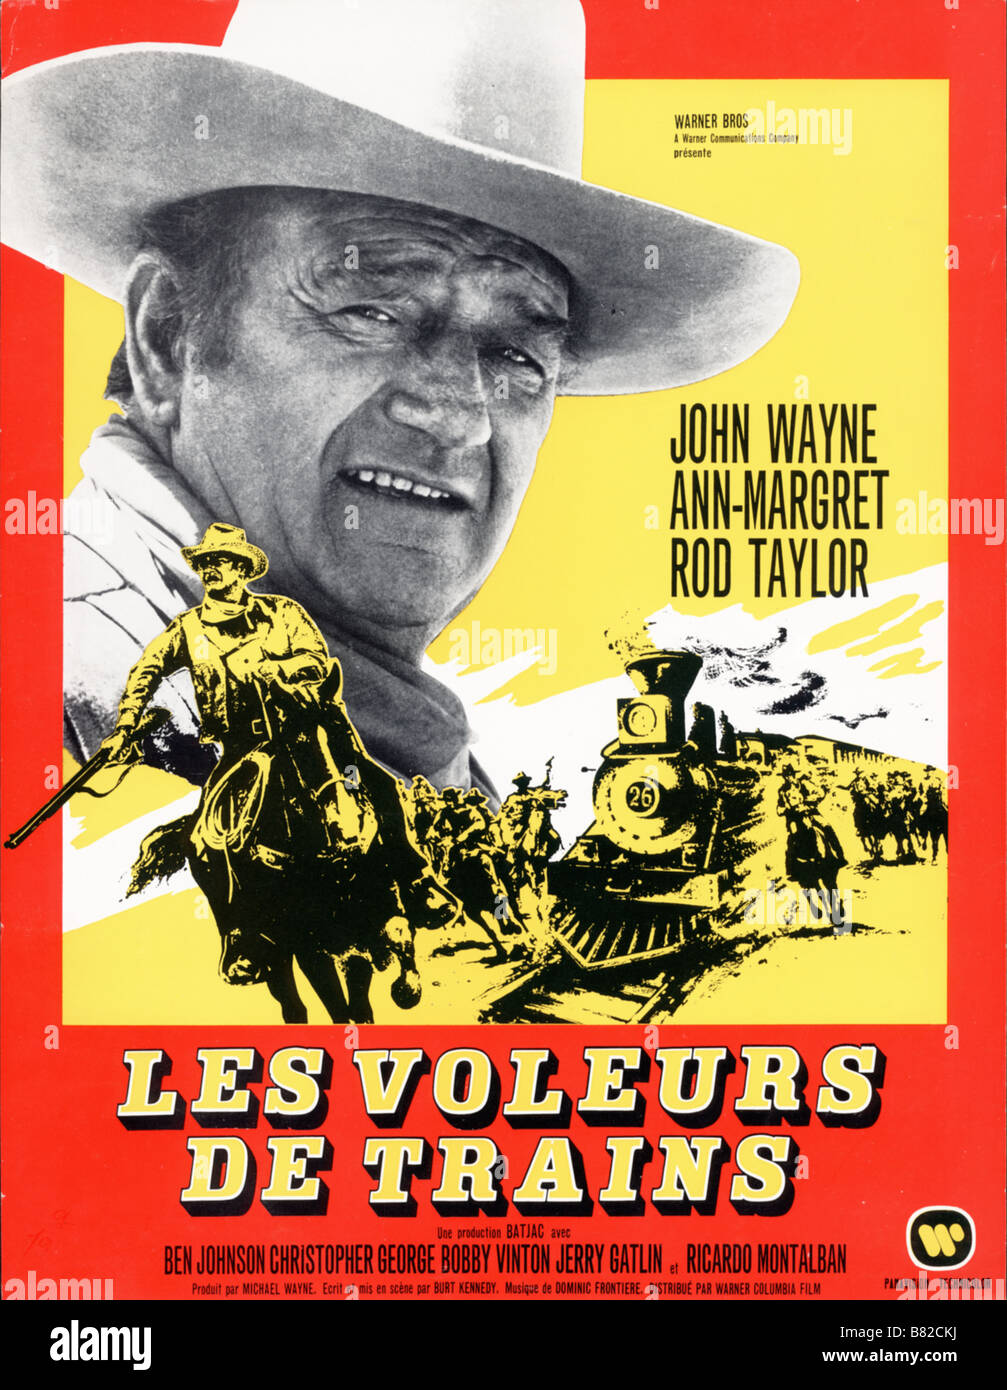 les voleurs de trains The Train Robbers  Year: 1973 USA John Wayne  Director: Burt Kennedy - Stock Image